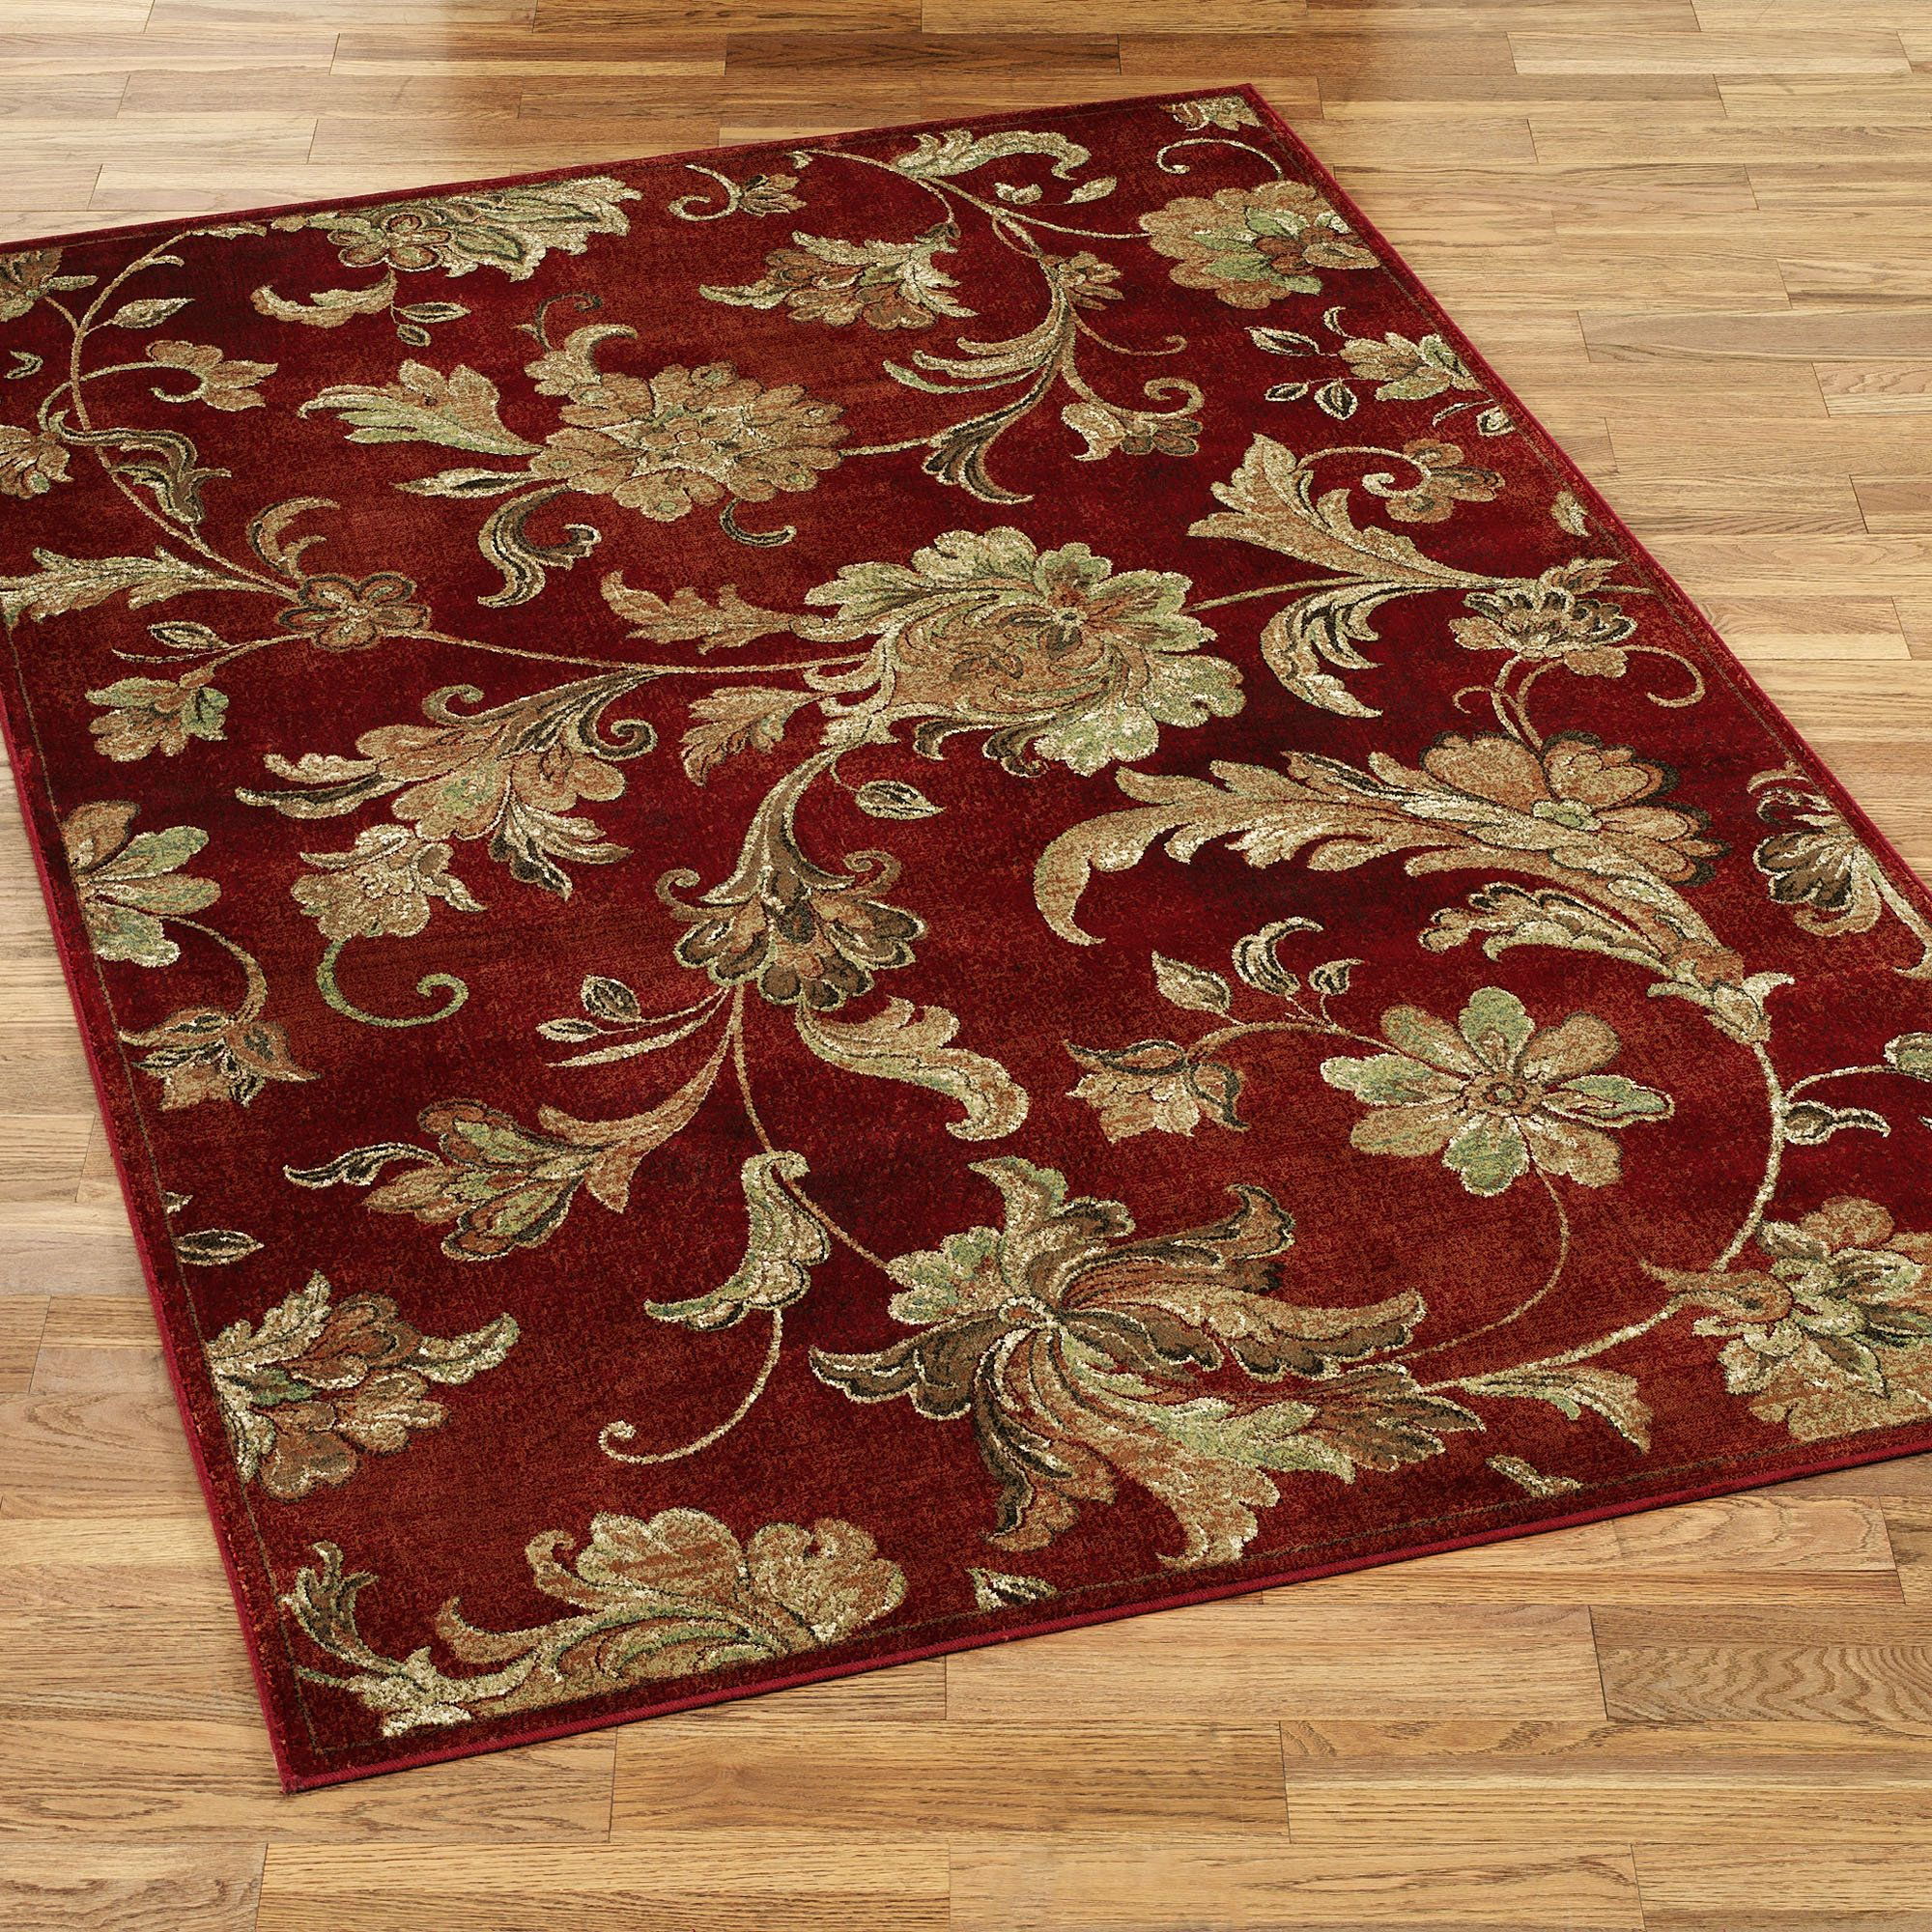 Aegean Floral Scroll Burgundy Area Rugs Area Rugs Cheap Carpet Fabric Area Rugs